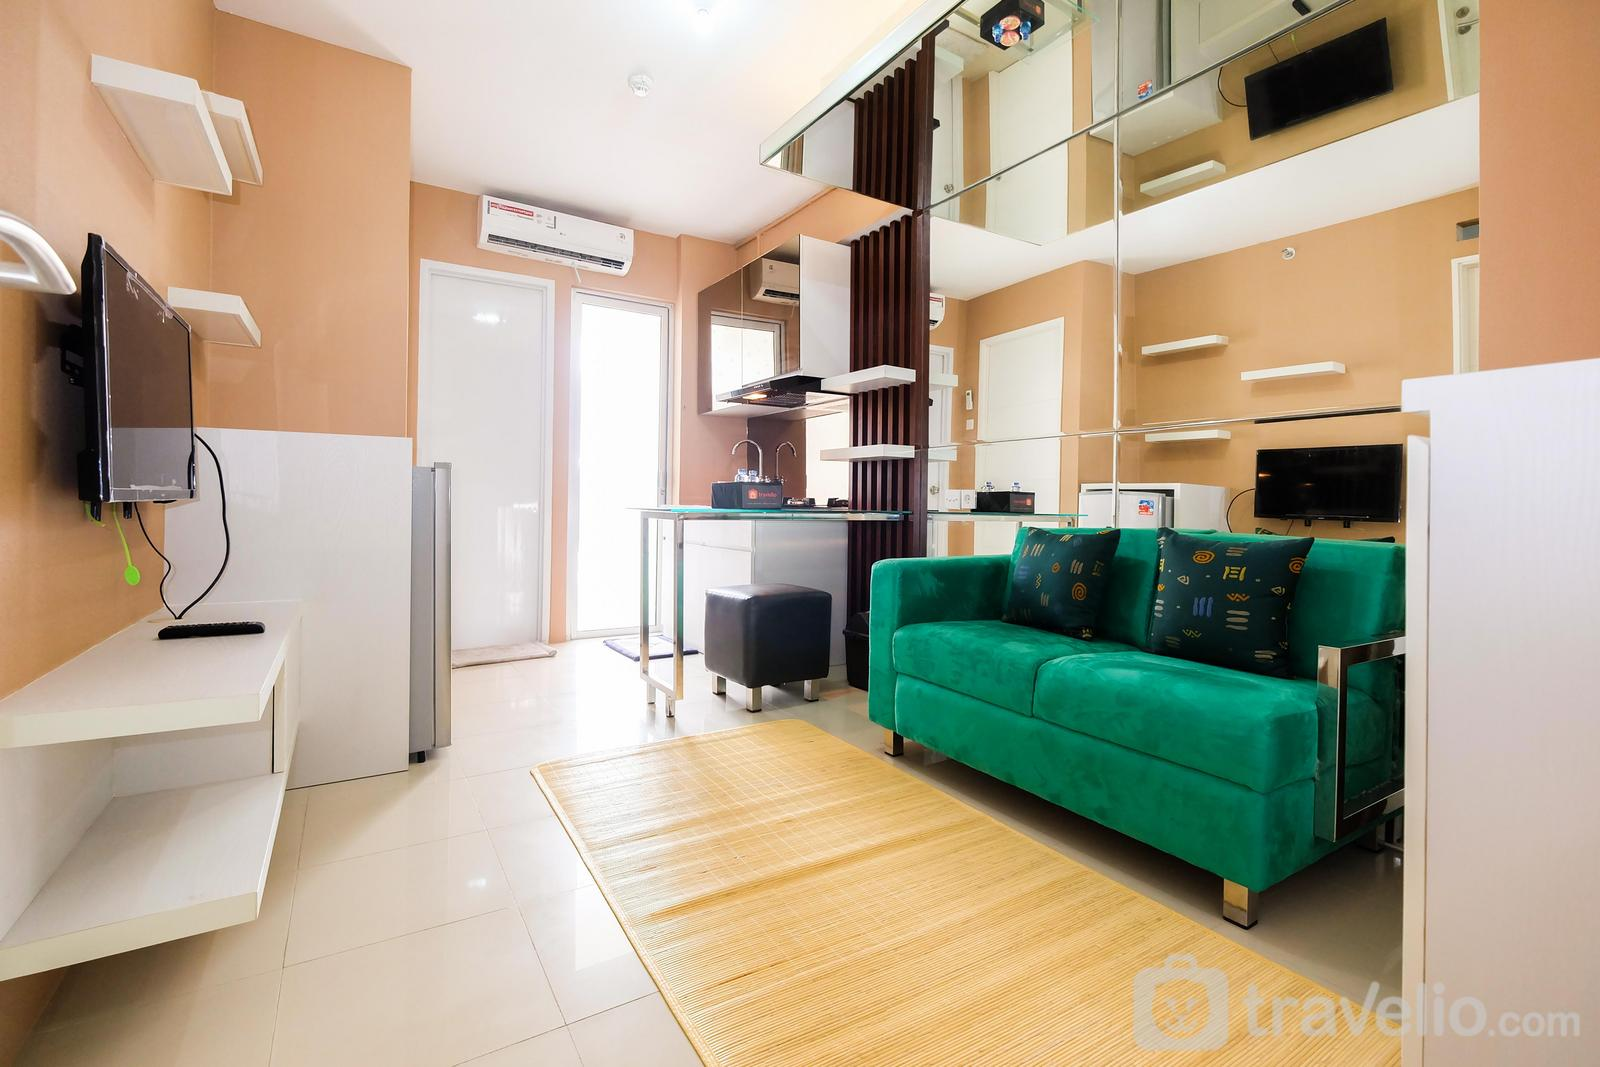 Bassura City Cipinang - Luxurious 2BR Bassura City Apartment with Mall Access By Travelio